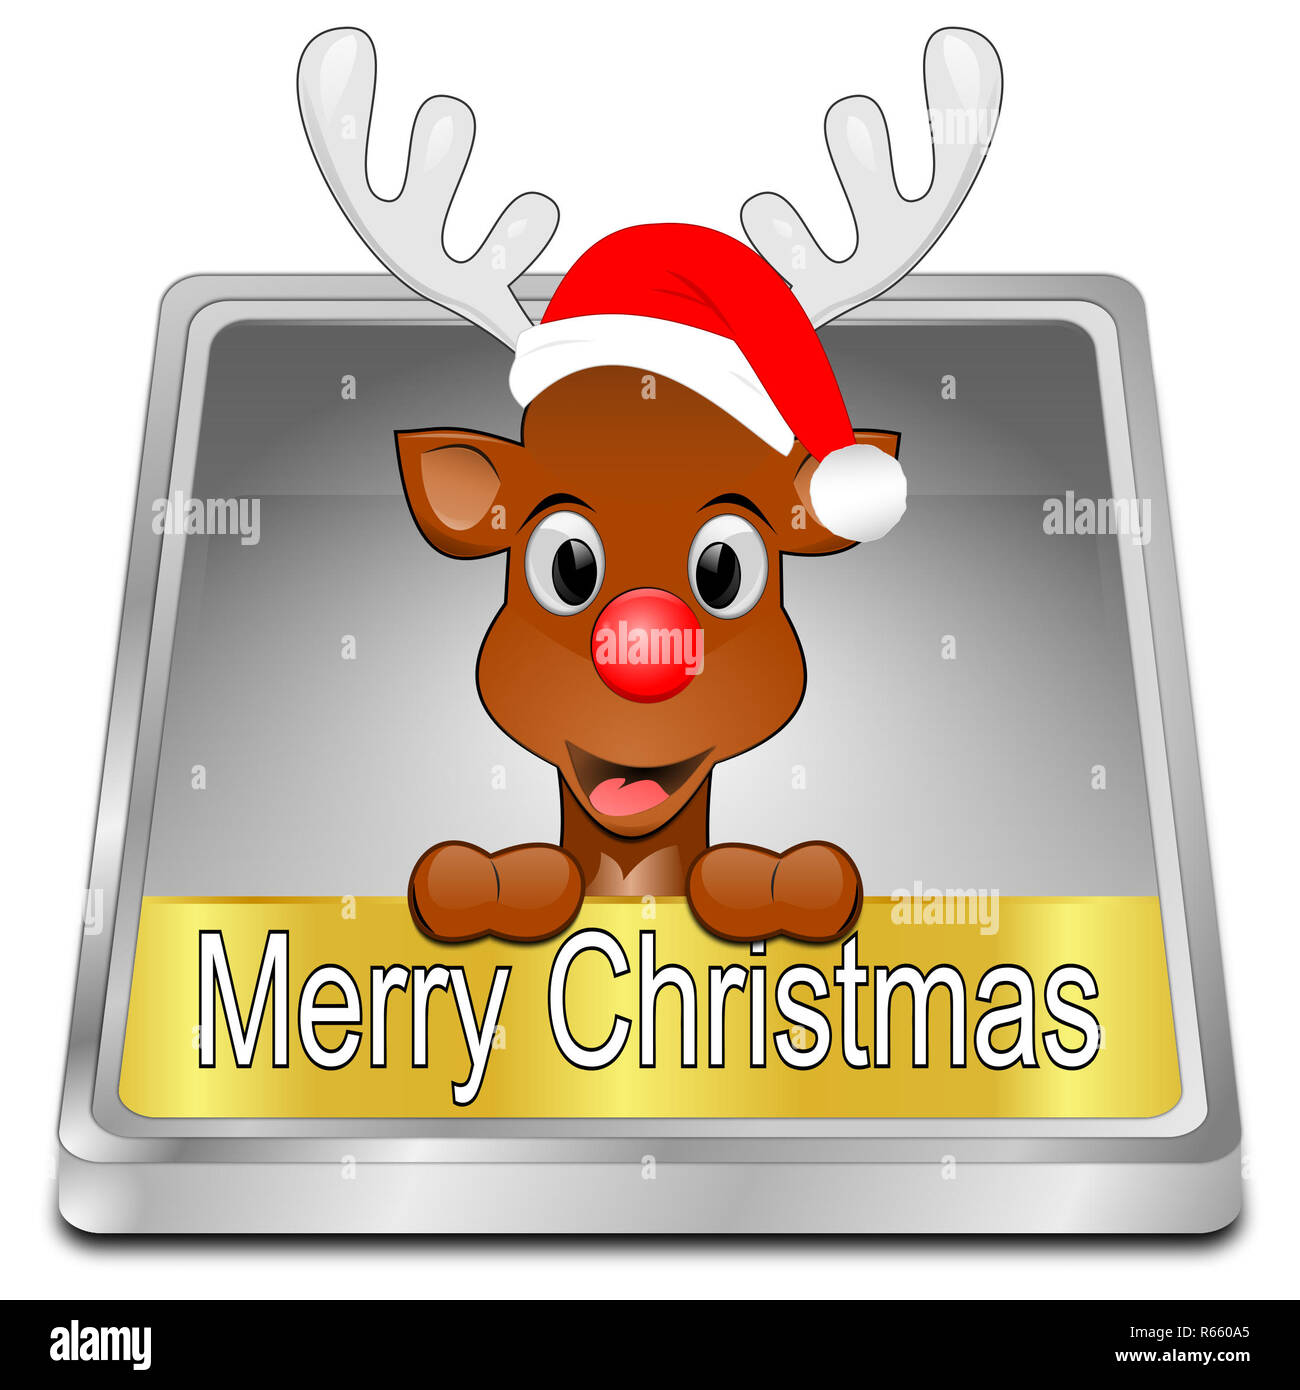 silver Reindeer wishing Merry Christmas Button - 3D illustration - Stock Image